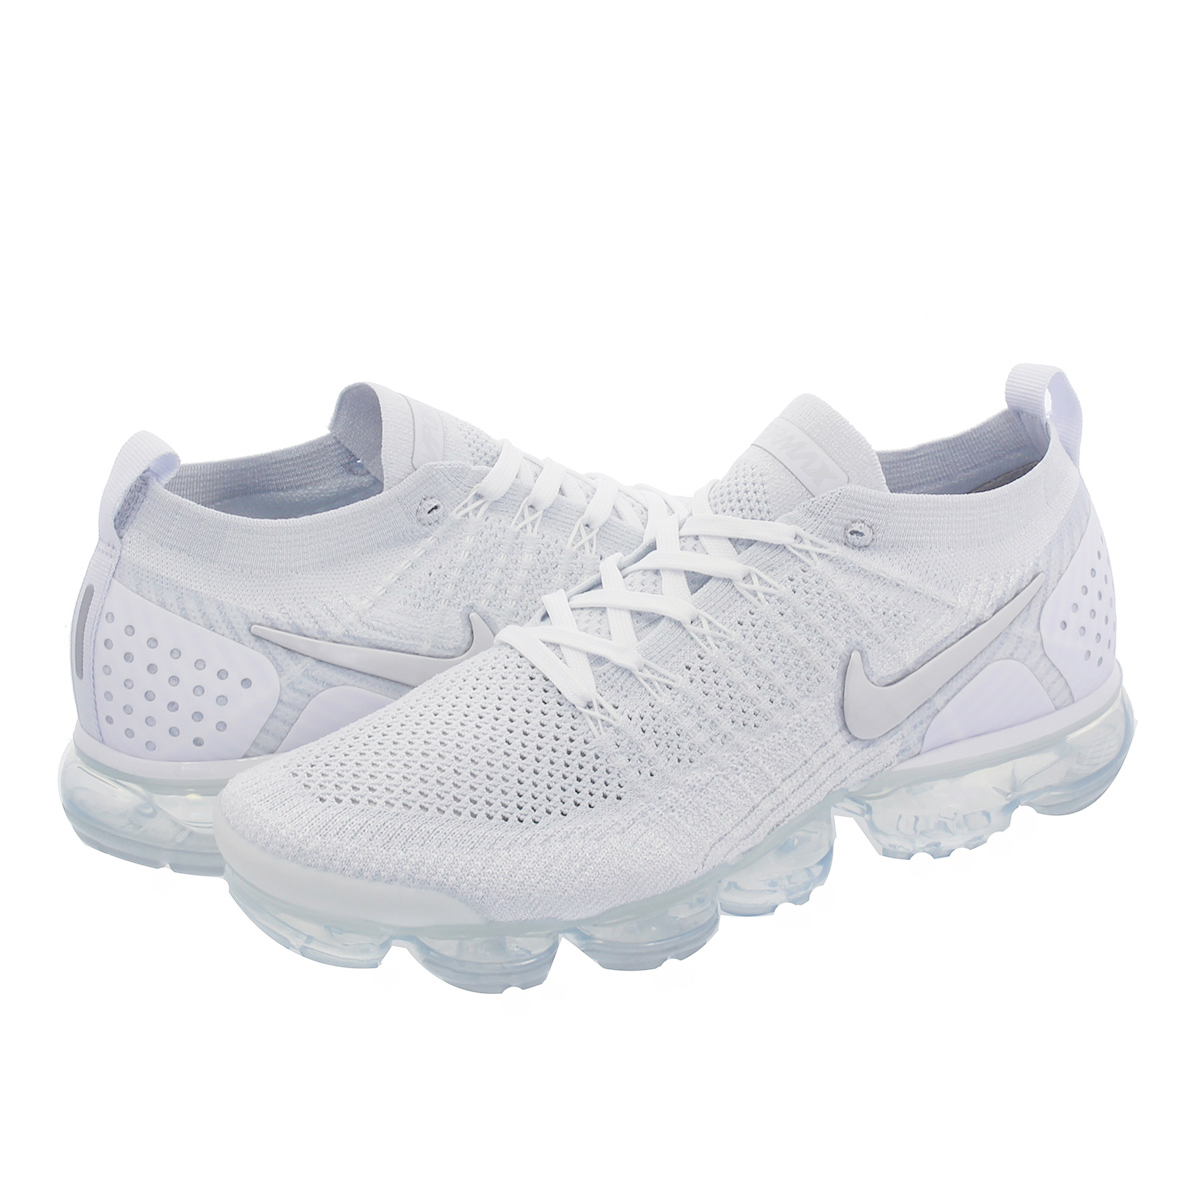 quality design 45817 a0284 NIKE AIR VAPORMAX FLYKNIT 2 Nike vapor max fried food knit 2 WHITE/VAST  GREY/FOOTBALL GREY 942,842-105